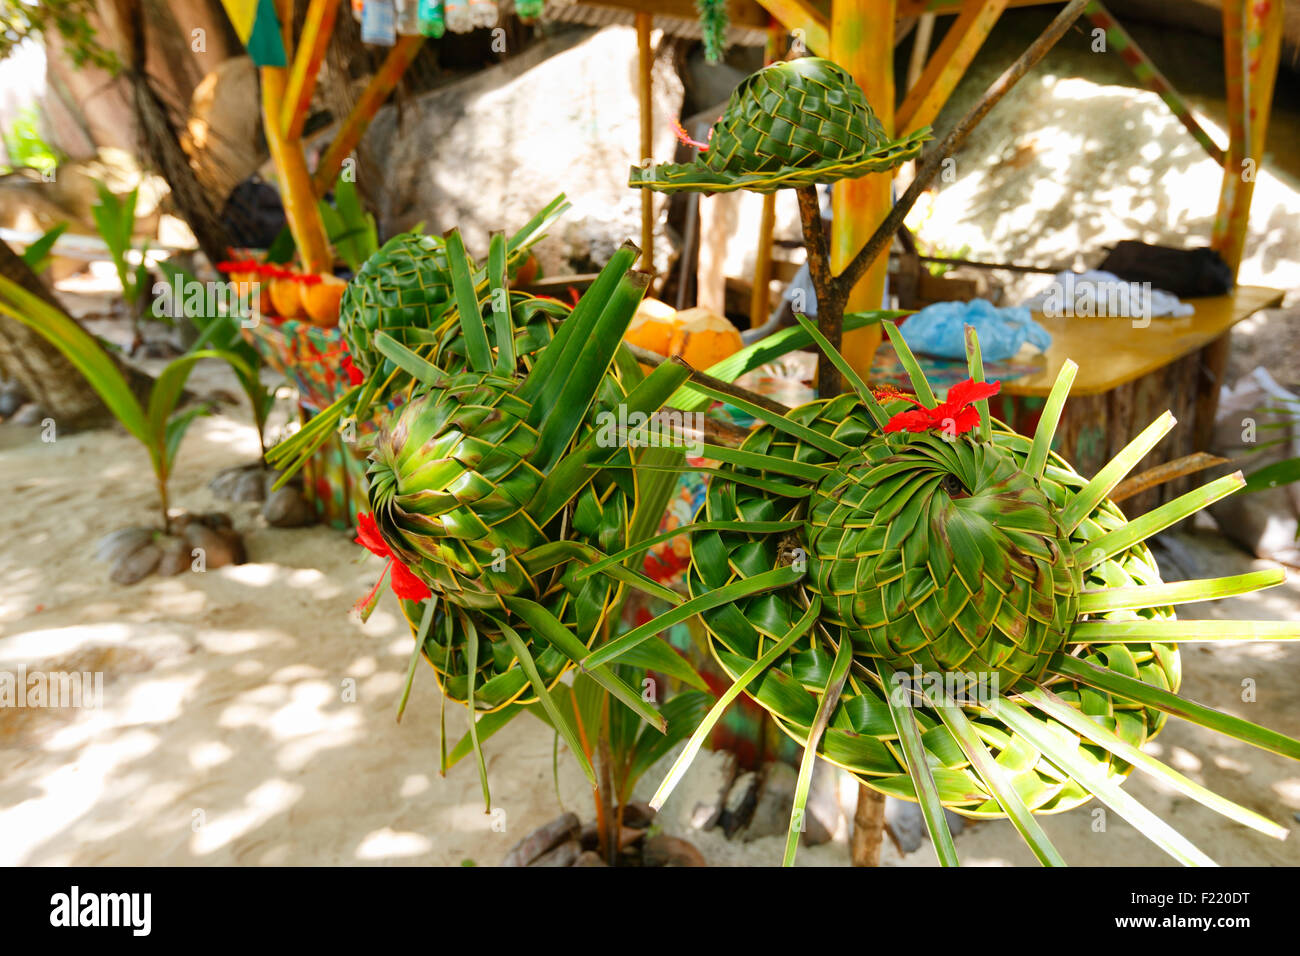 Hat woven of palm leaves, Seychelles - Stock Image